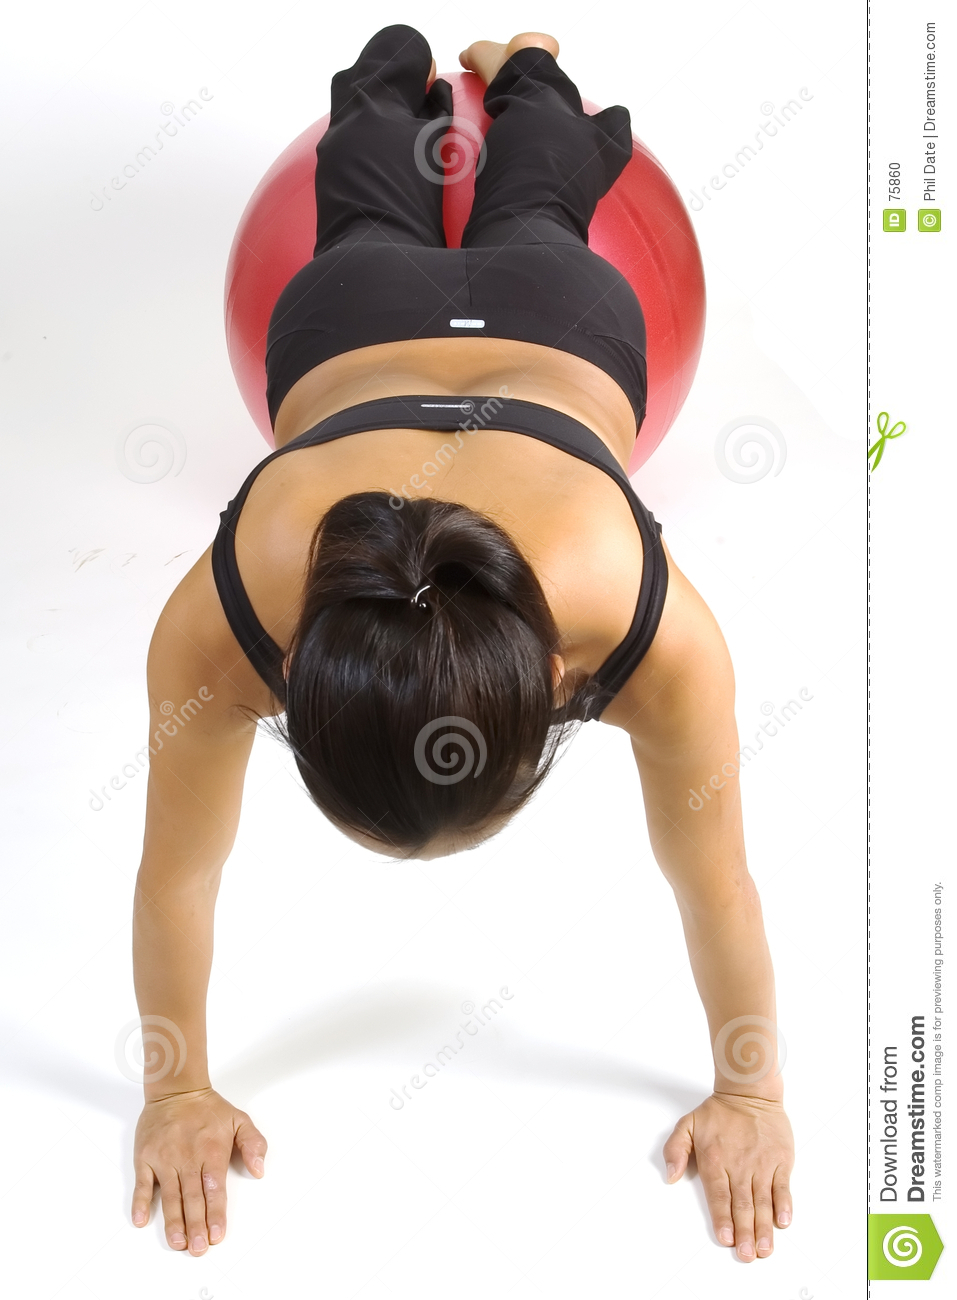 Fitball pushup